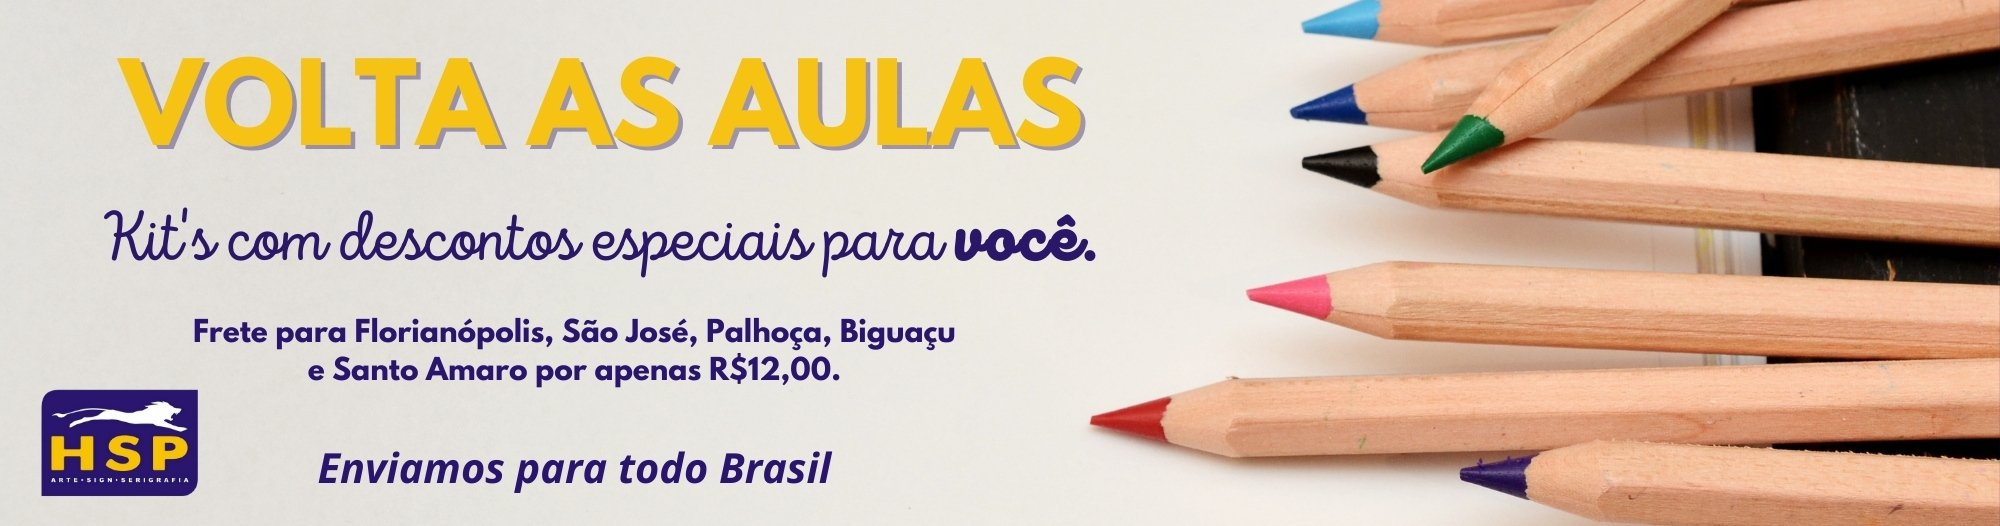 VOLTA AS AULAS 2021